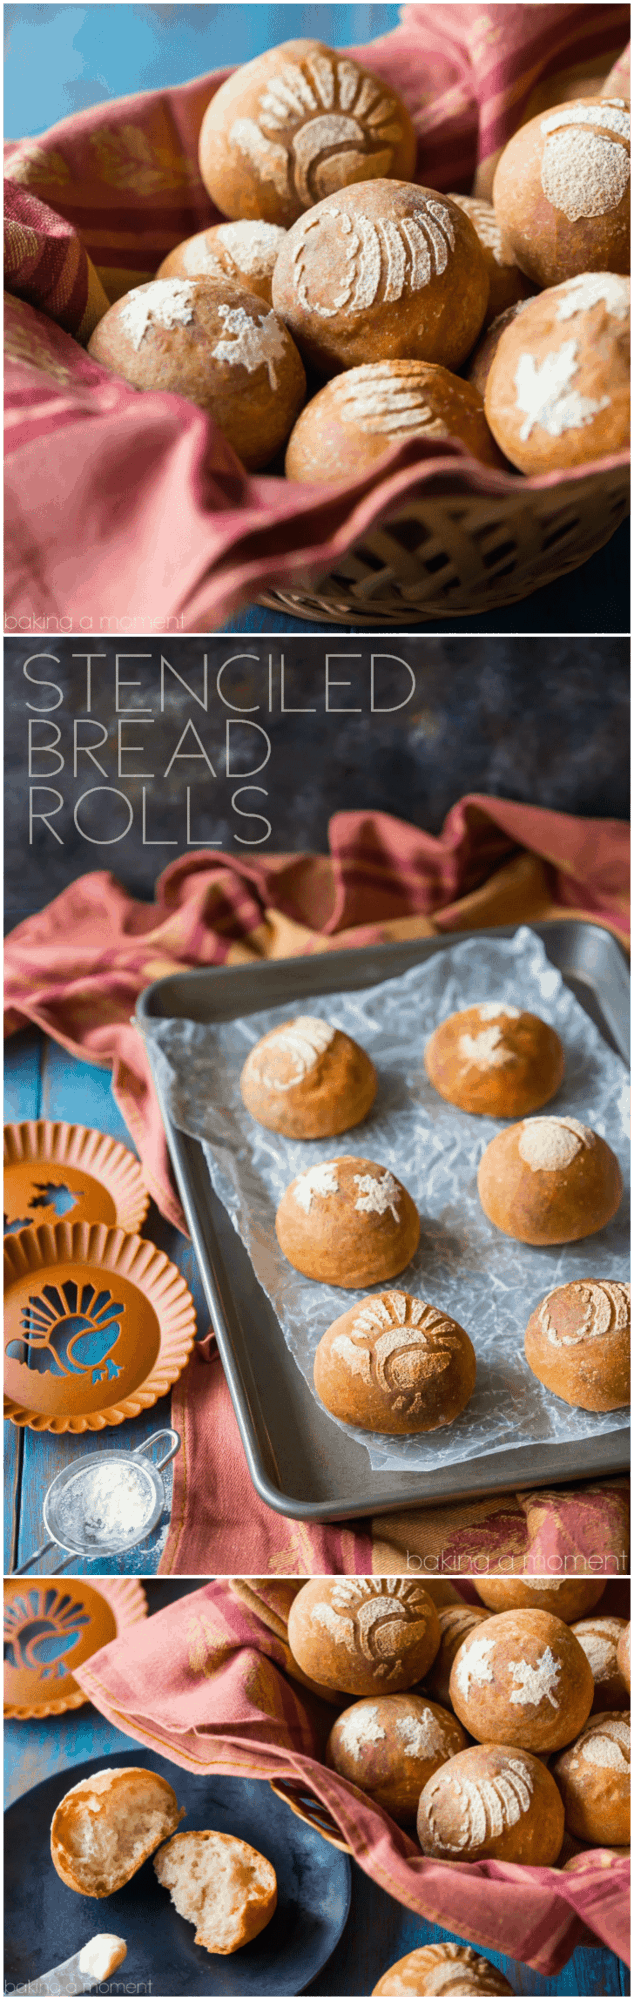 I made these stenciled bread rolls for Thanksgiving and my guests went crazy for them! It was surprisingly easy to do and it made our holiday table even more festive.  food bread crafts